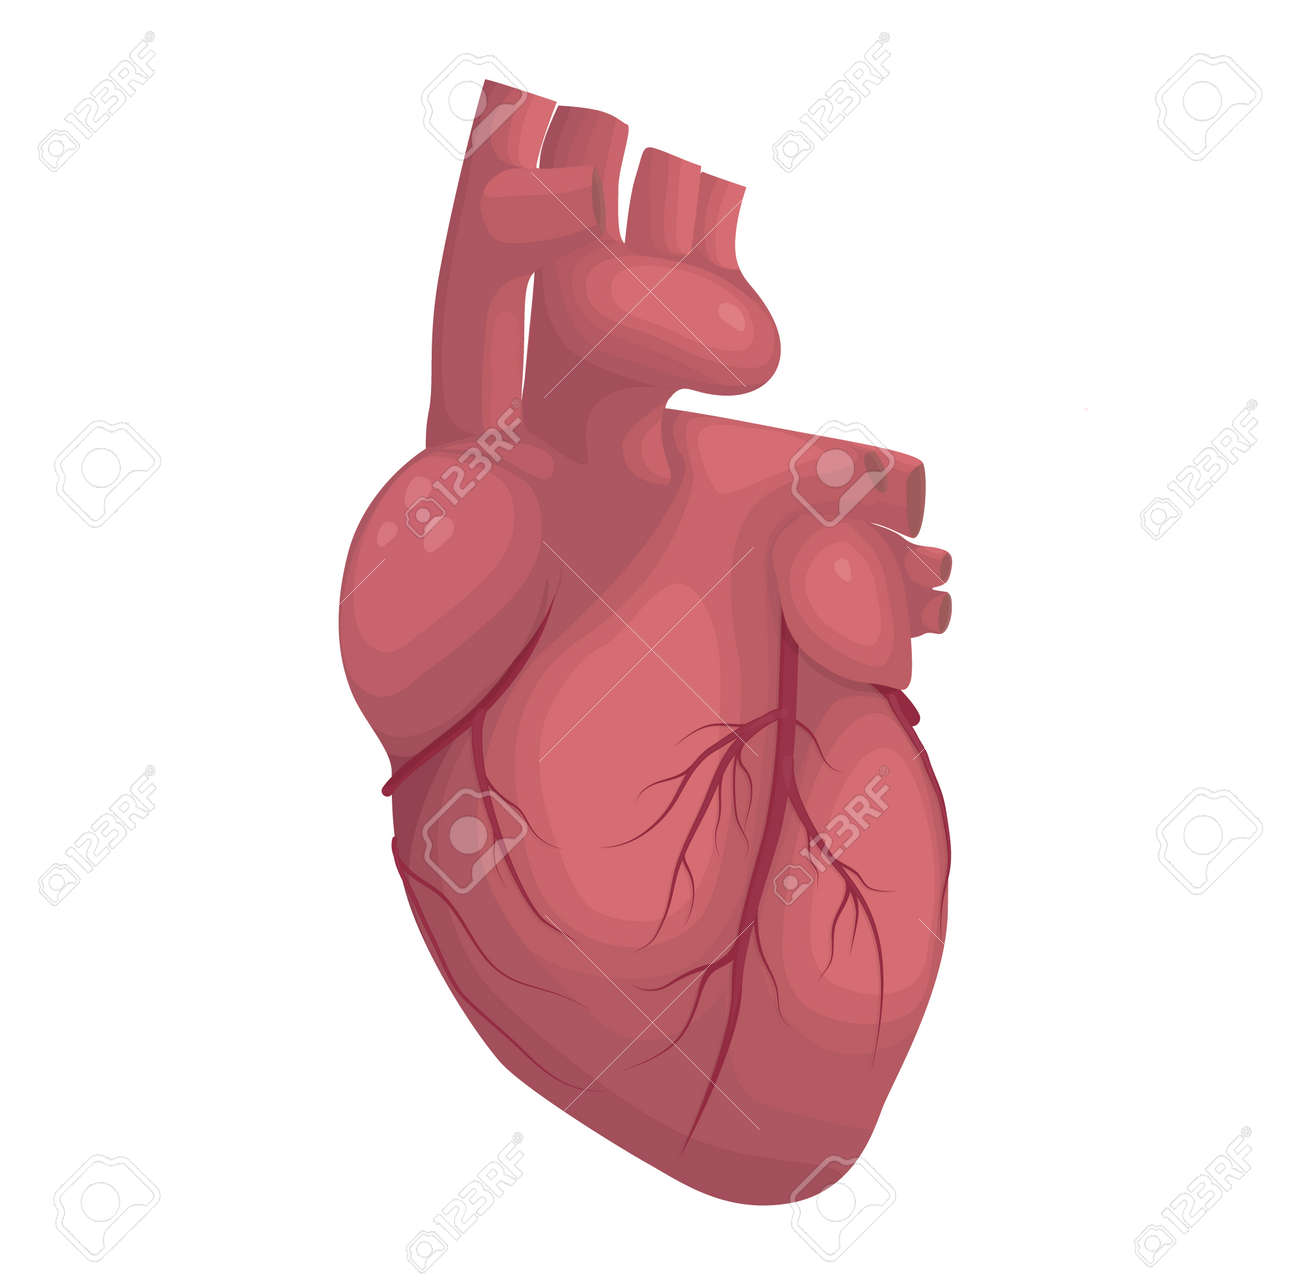 Human Heart Vector Illustration Cardiac Anatomy Royalty Free